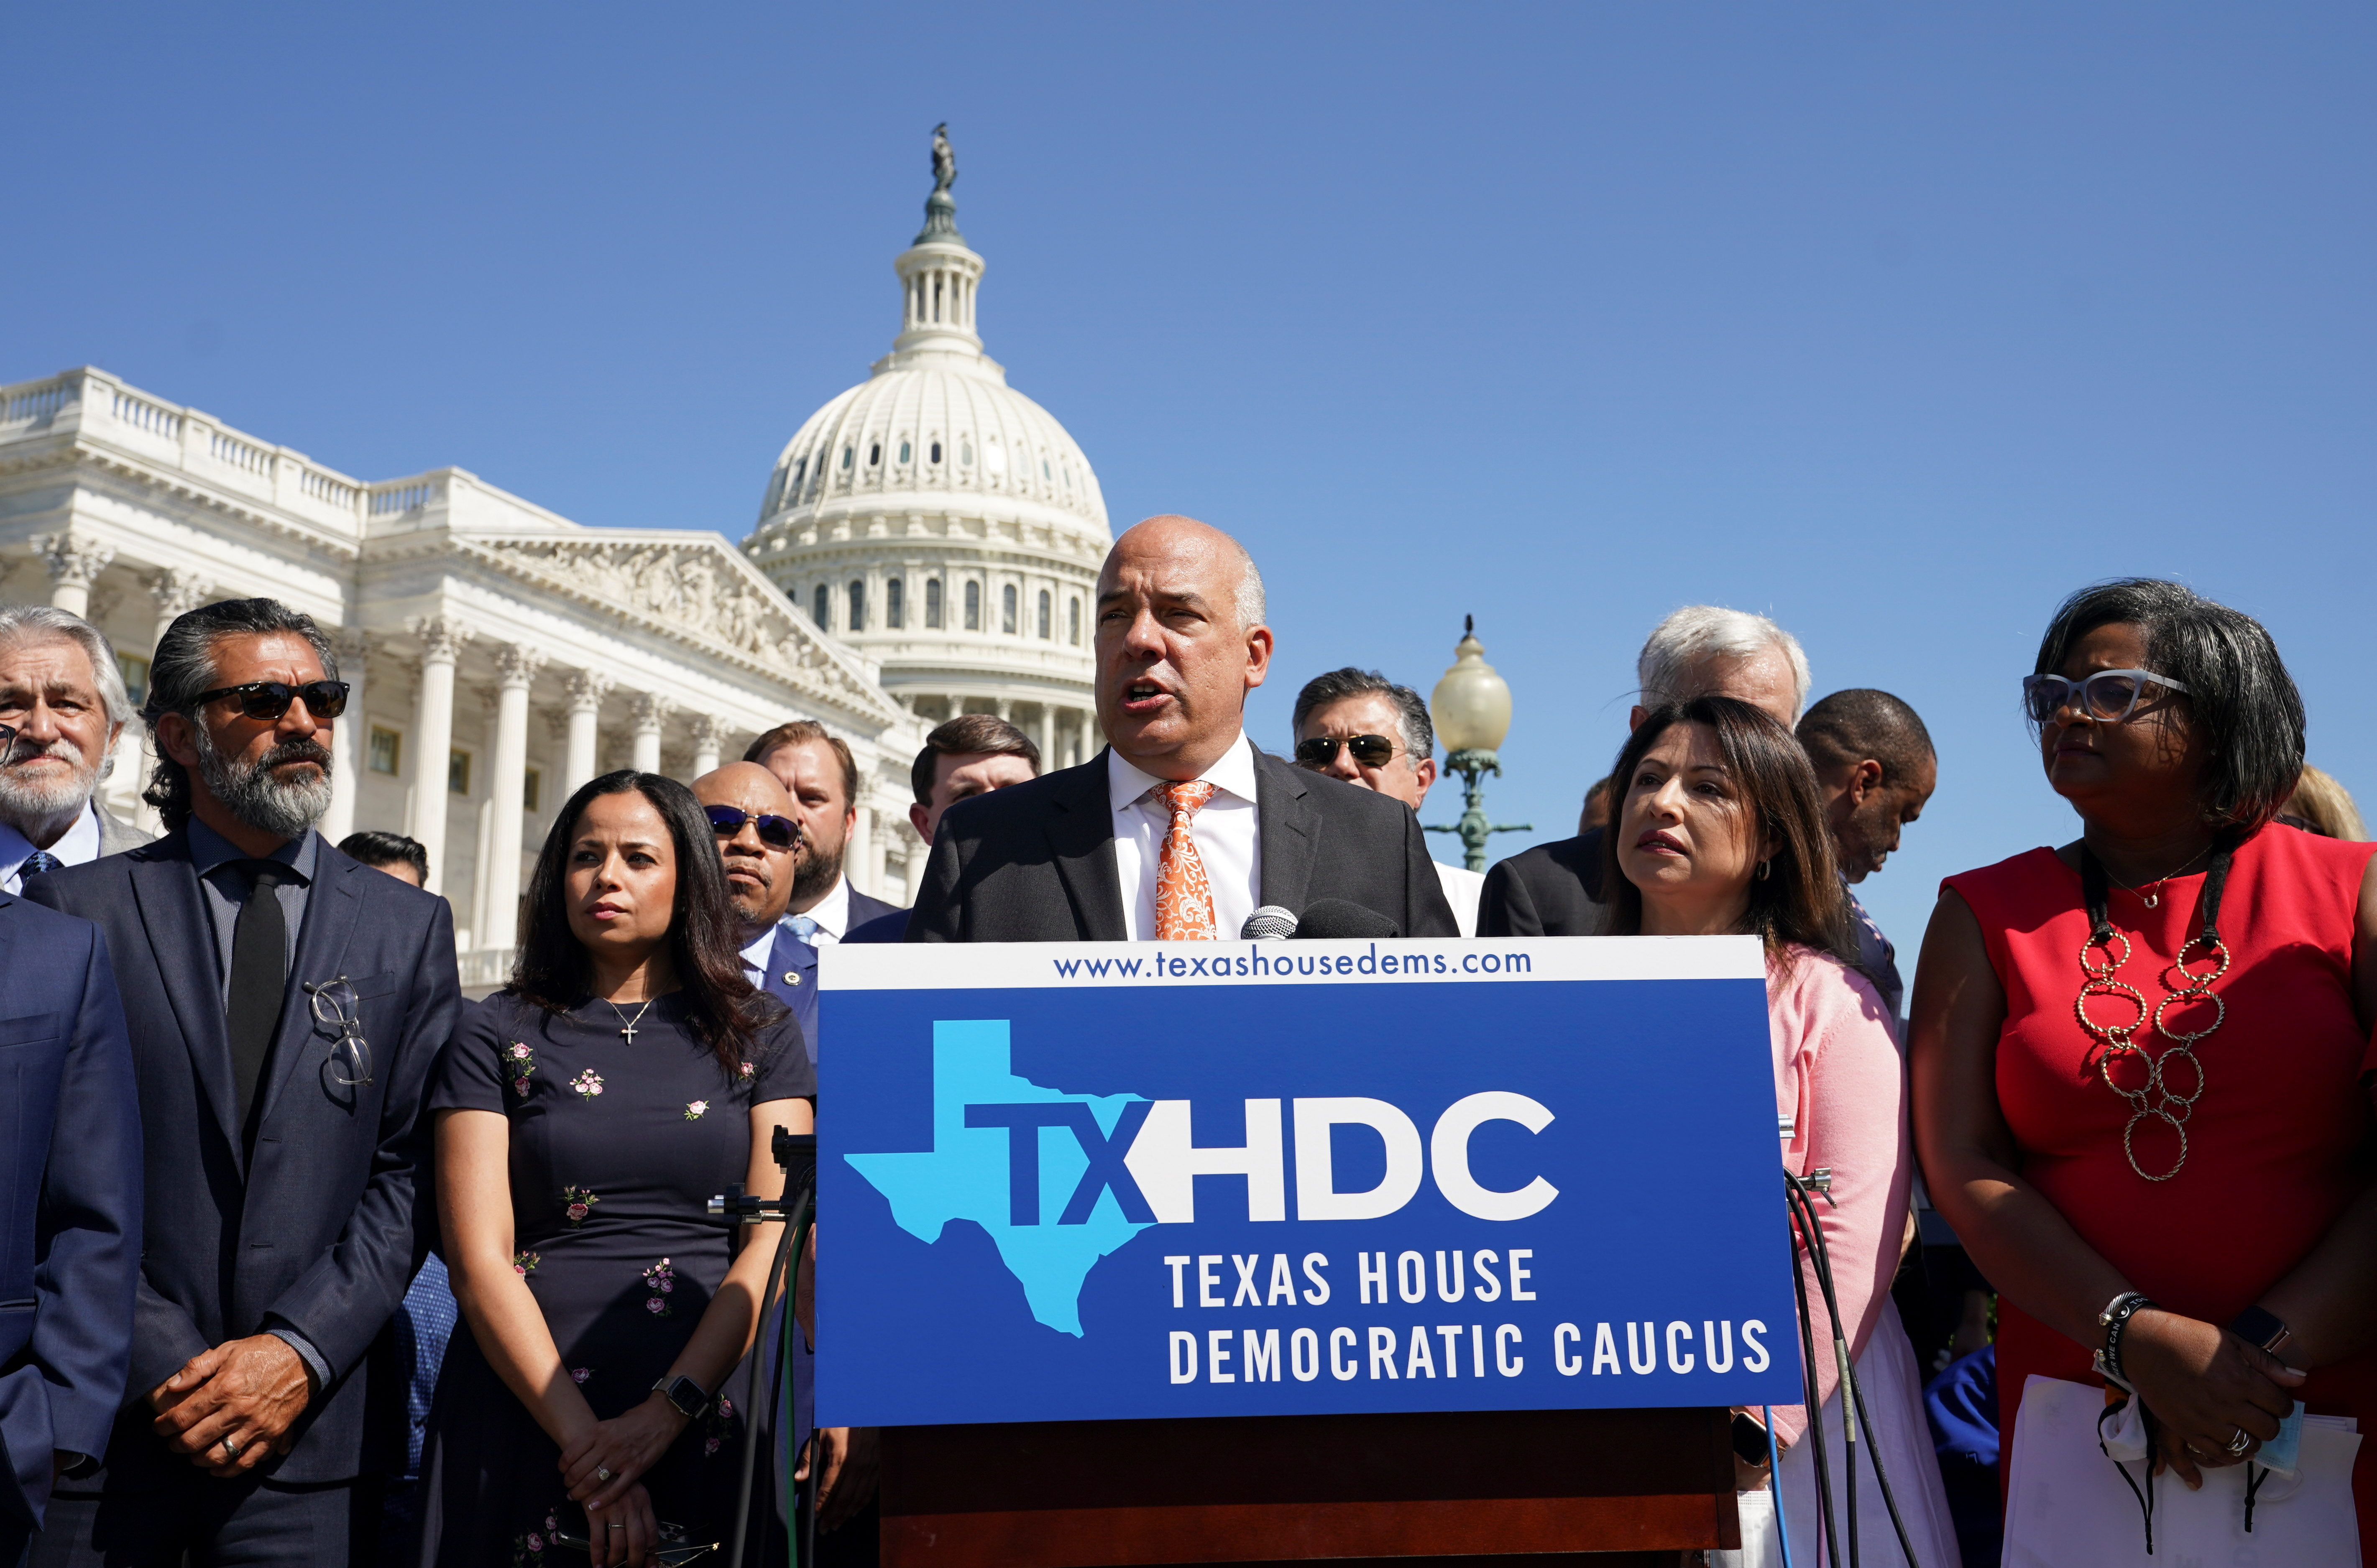 Representative Chris Turner, chair of the Texas House Democratic Caucus, joins with other Democratic members of the Texas House of Representatives, who are boycotting a special session of the legislature in an effort to block Republican-backed voting restrictions, as they speak in front of the U.S. Capitol in Washington, U.S., July 13, 2021. REUTERS/Kevin Lamarque